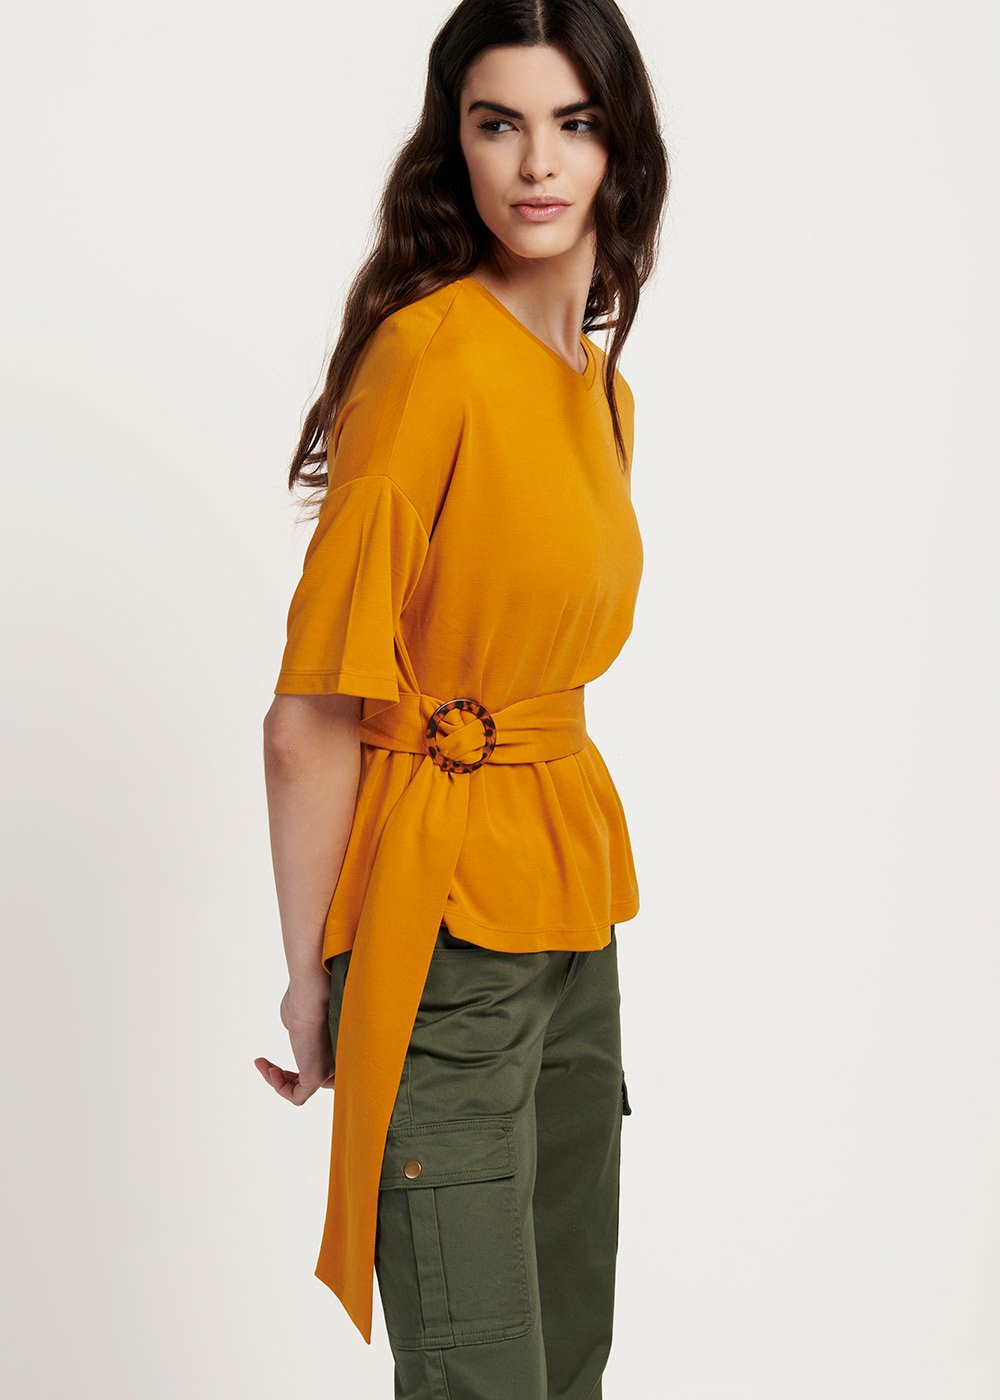 Sindy t-shirt with belt around the waist - Turmeric - Woman